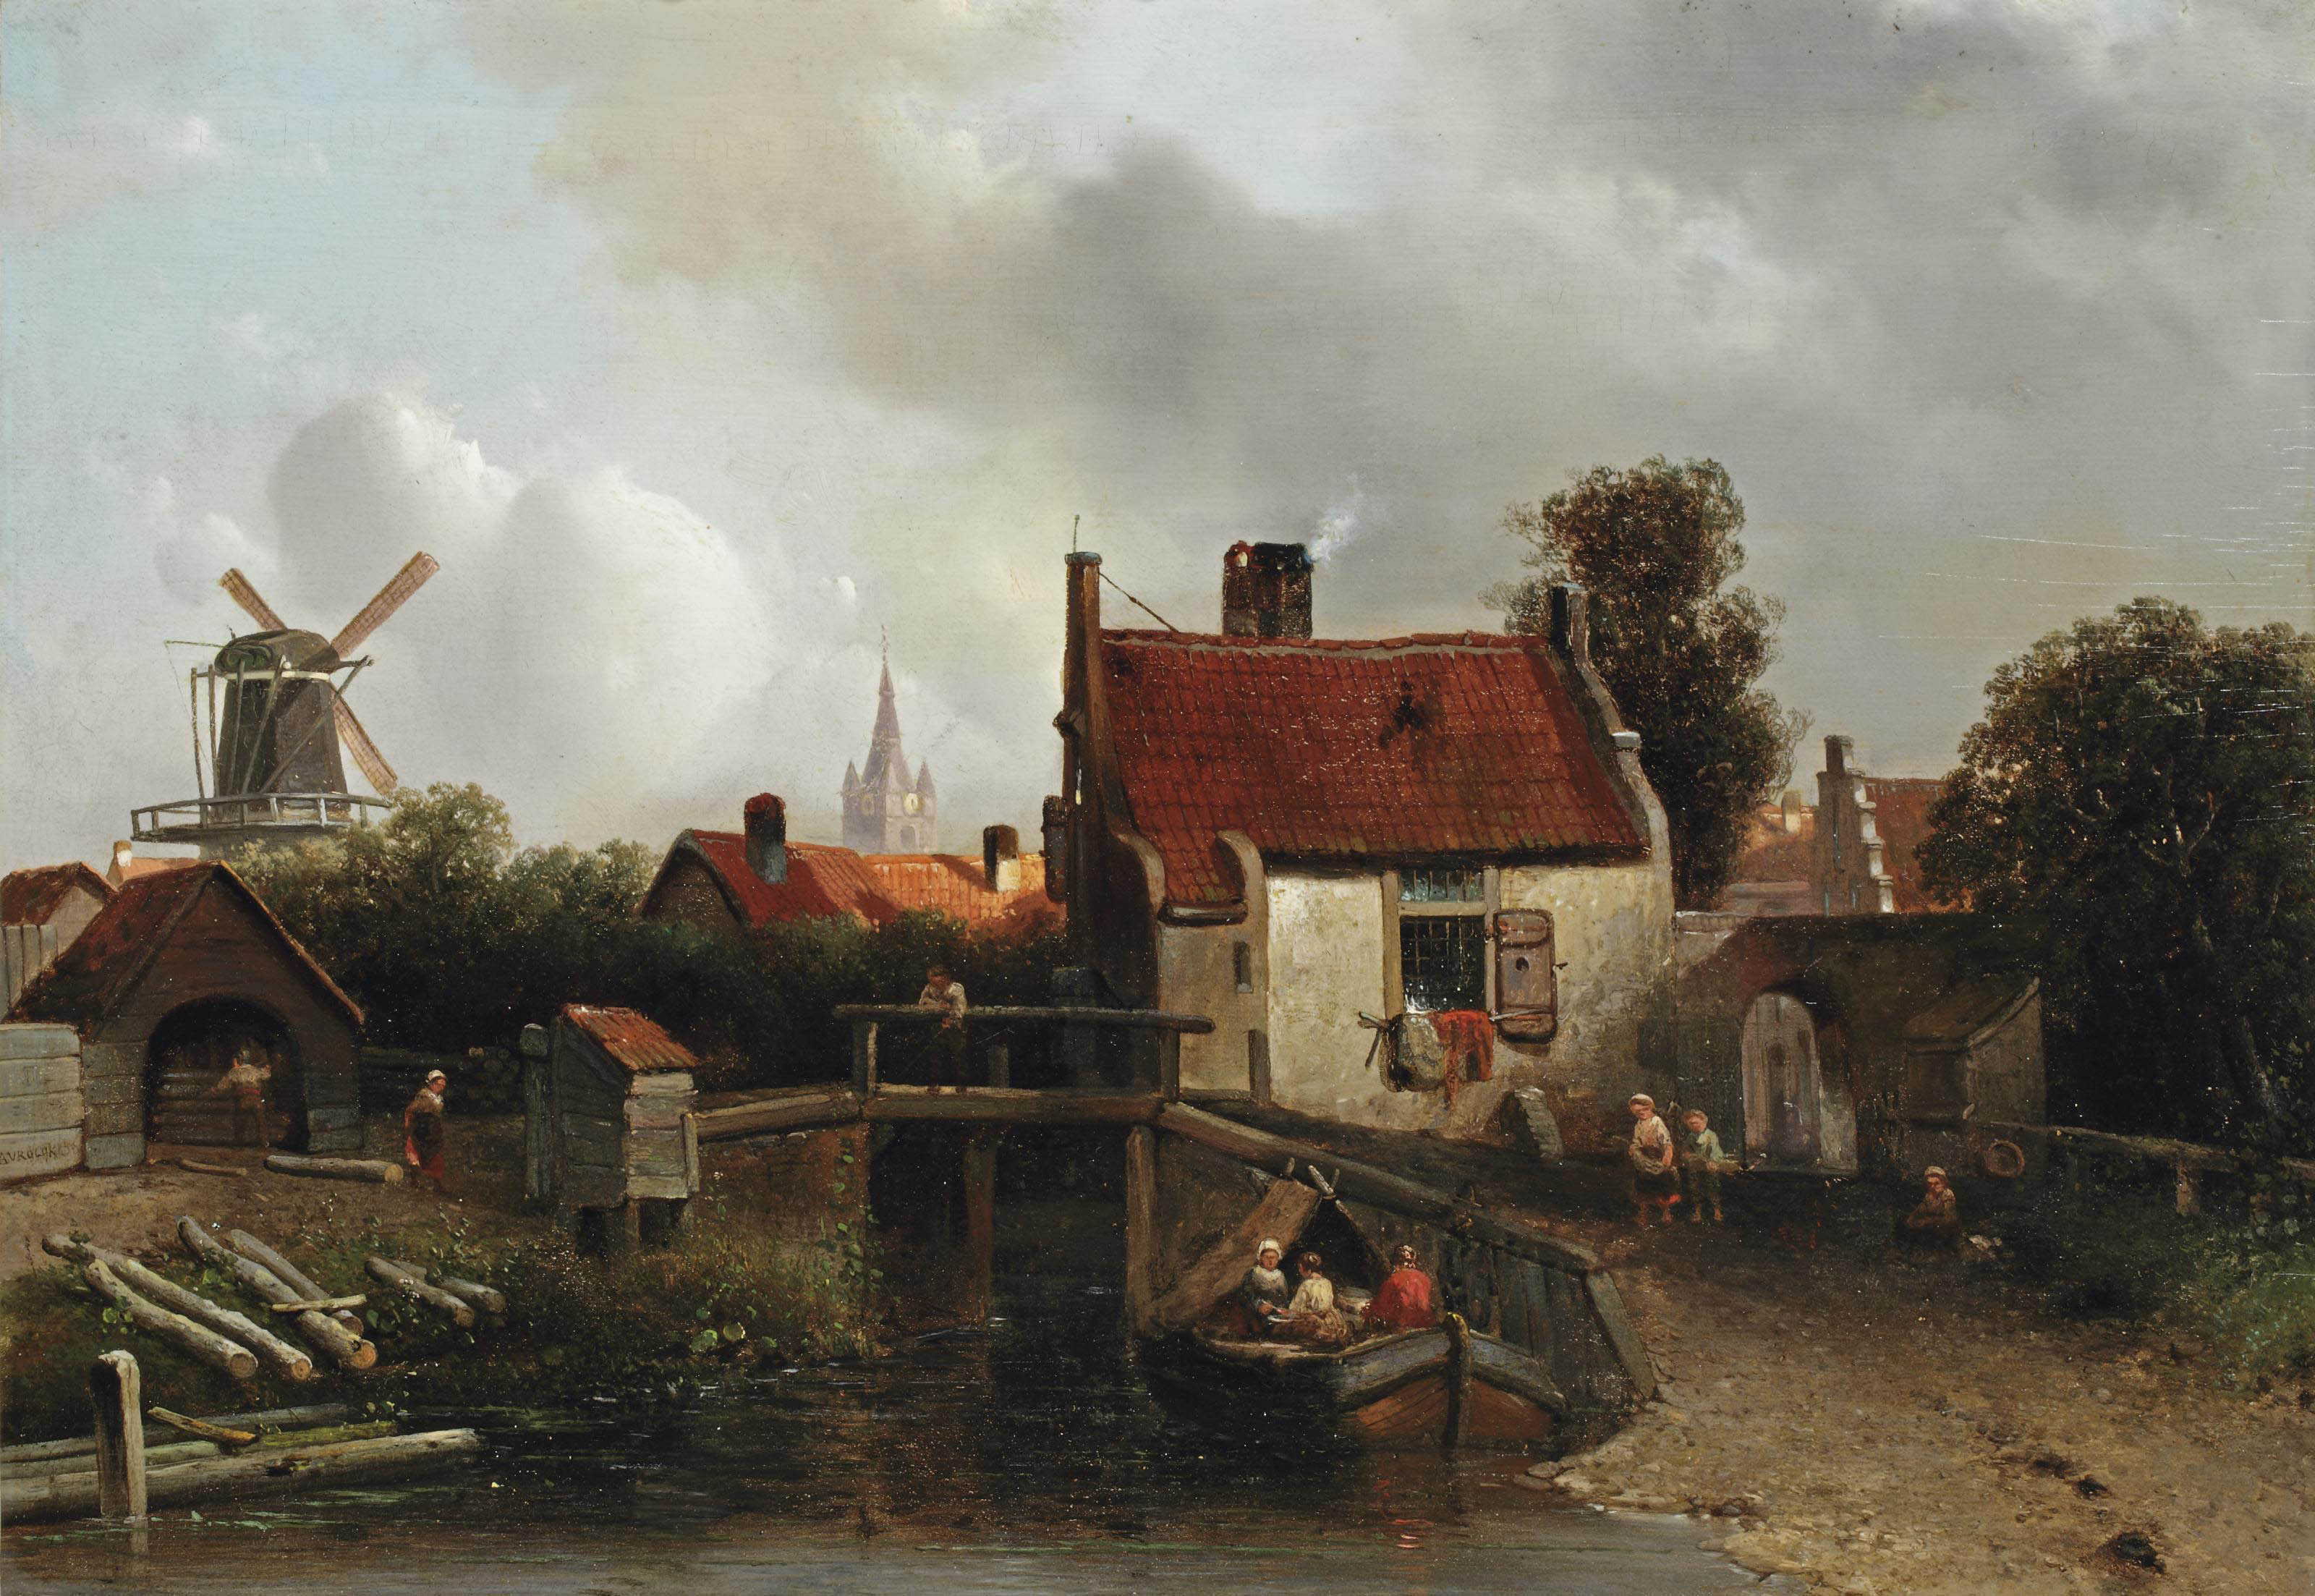 Townspeople on the outskirts of the city of Delft